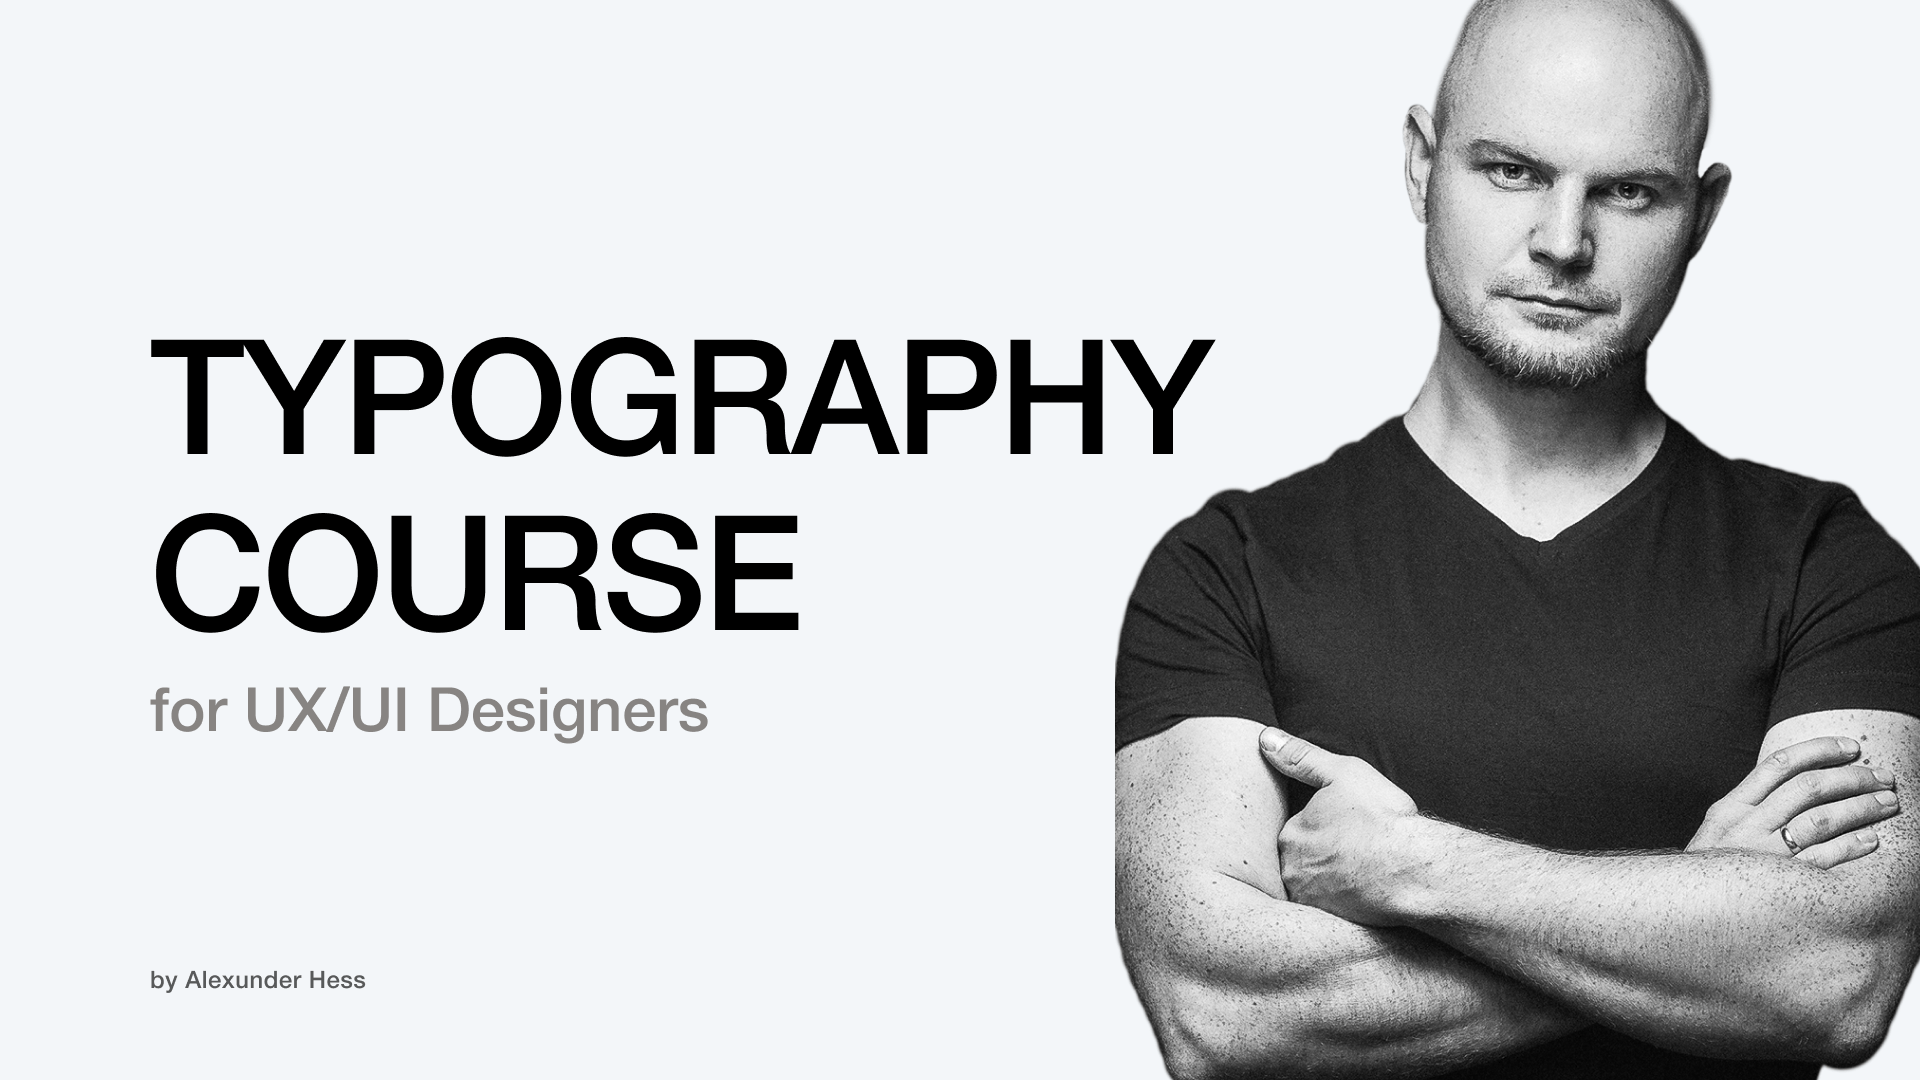 typography-course-for-uxui-designers-by-alexunder-hess_light